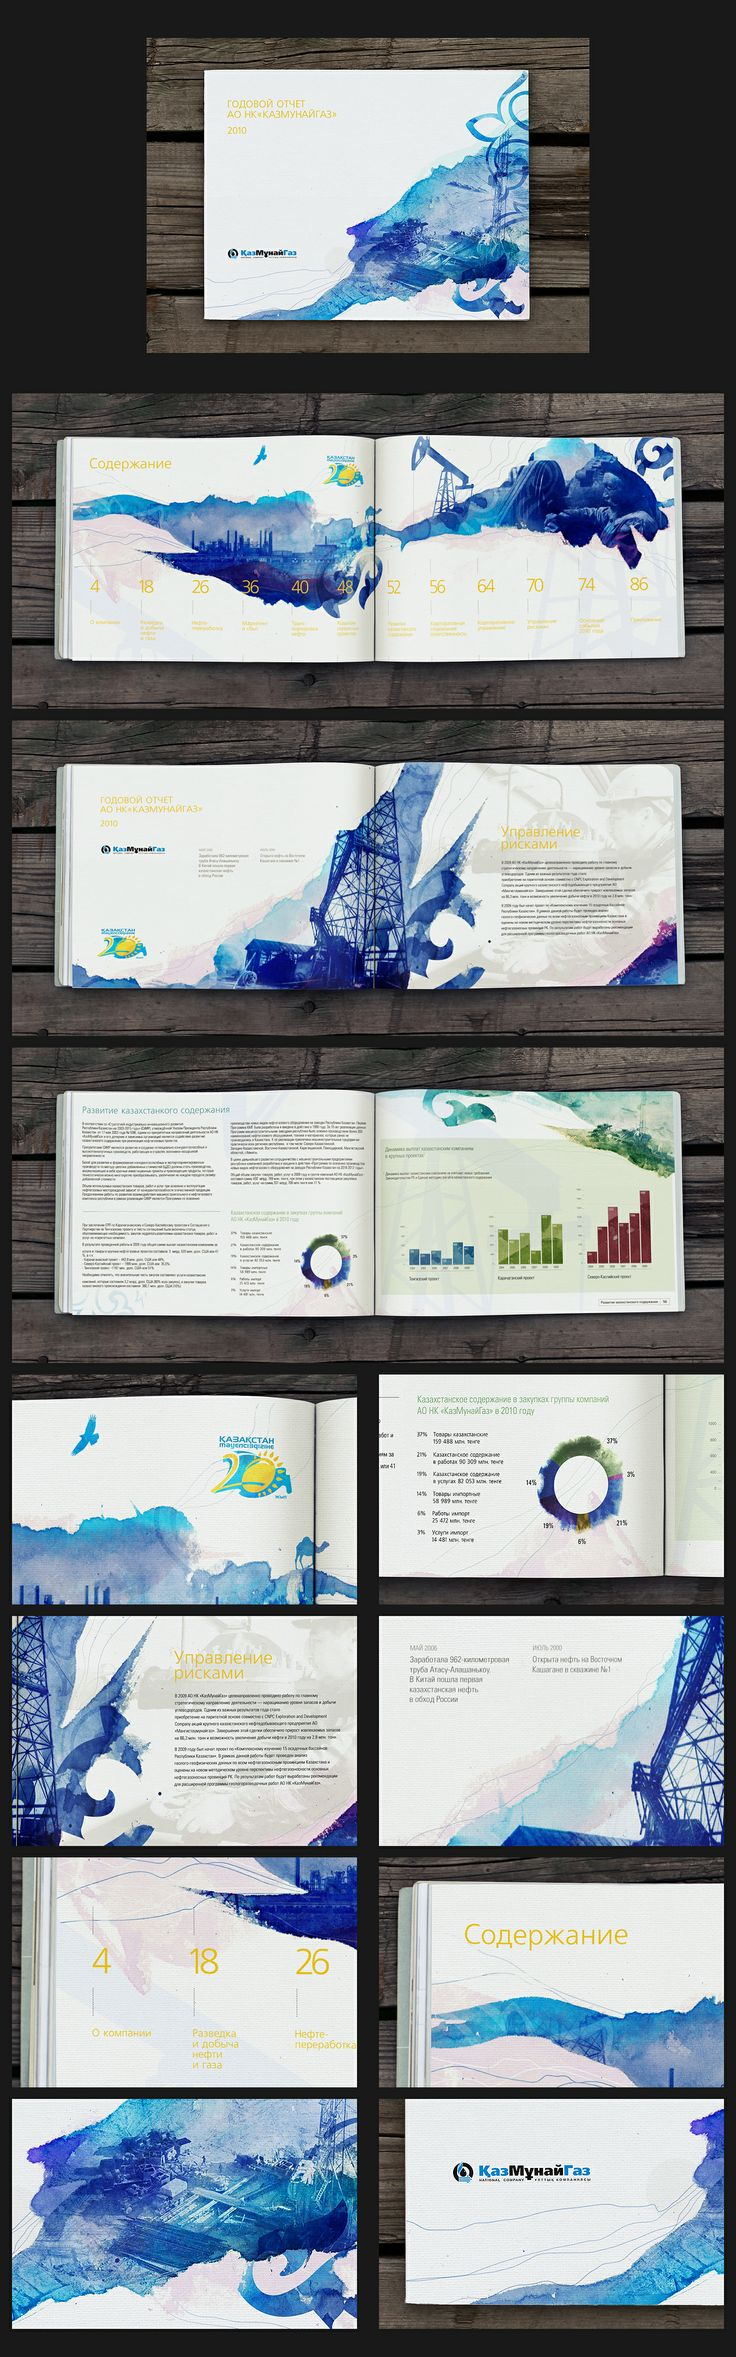 Annual report, the use of colour and shapes create the style of this whole book, graphic elements stay the same across the whole publication.